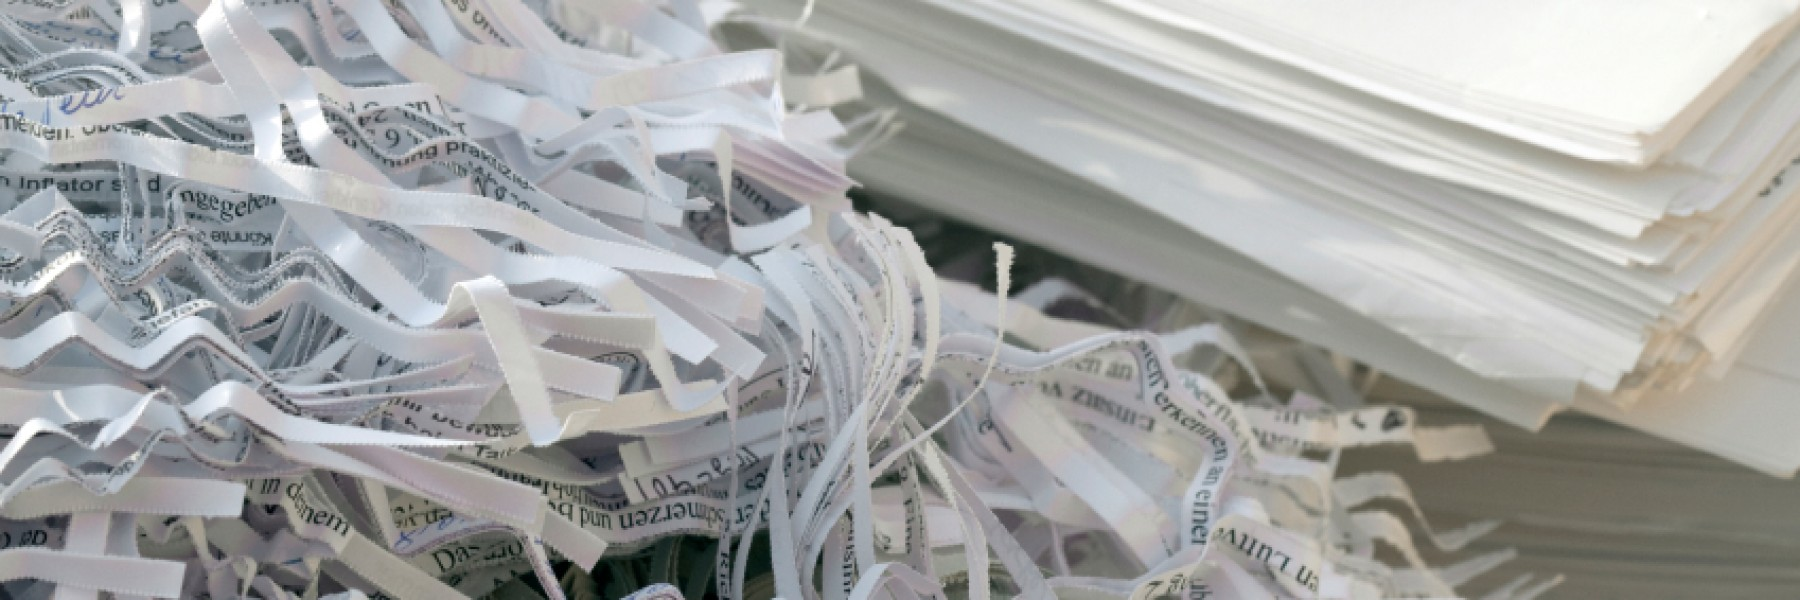 Reasons you should shred your documents